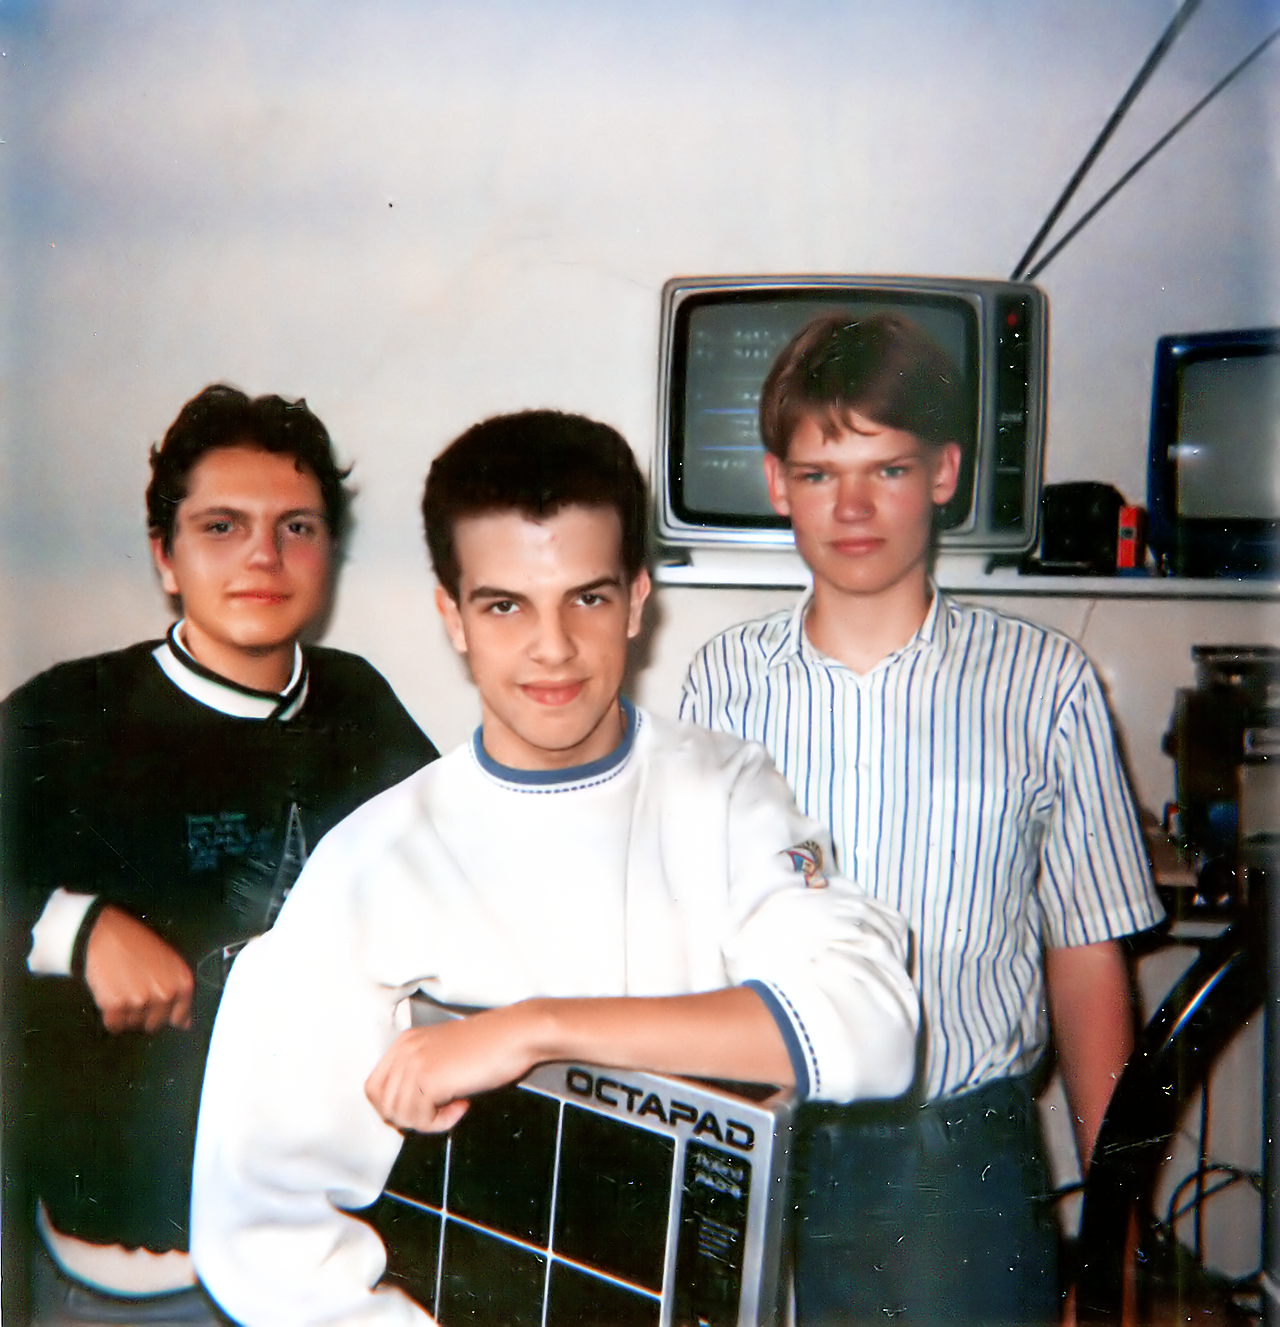 Photo of the Team Hoi Amiga game development team